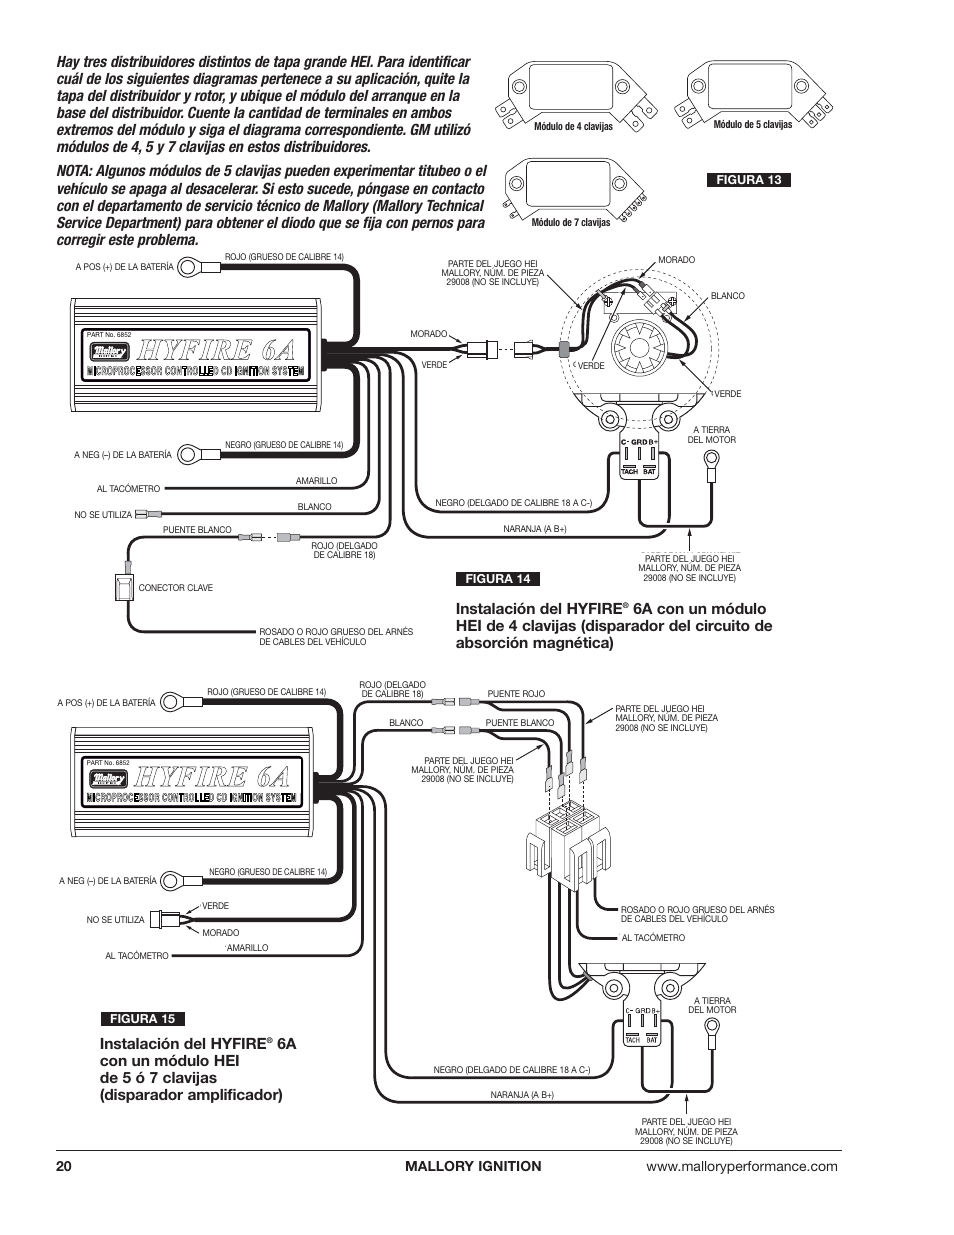 Mallory 685 Ignition Wiring Diagram - Wiring Diagram G11 on mallory ignition wiring diagram digital motorcycle, mallory ignition wiring diagram 85, mallory marine ignition wiring, mallory ignition wiring diagram 75, mallory ignition wiring diagram chevy, mallory ignition distributor, mallory ignition module, mallory 6100m ignition, mallory magneto ignition wiring diagram, ford 8n ignition system diagrams, mallory 8548201 distributor wiring diagram, mallory ignition troubleshooting, mallory ct pro ignition system,